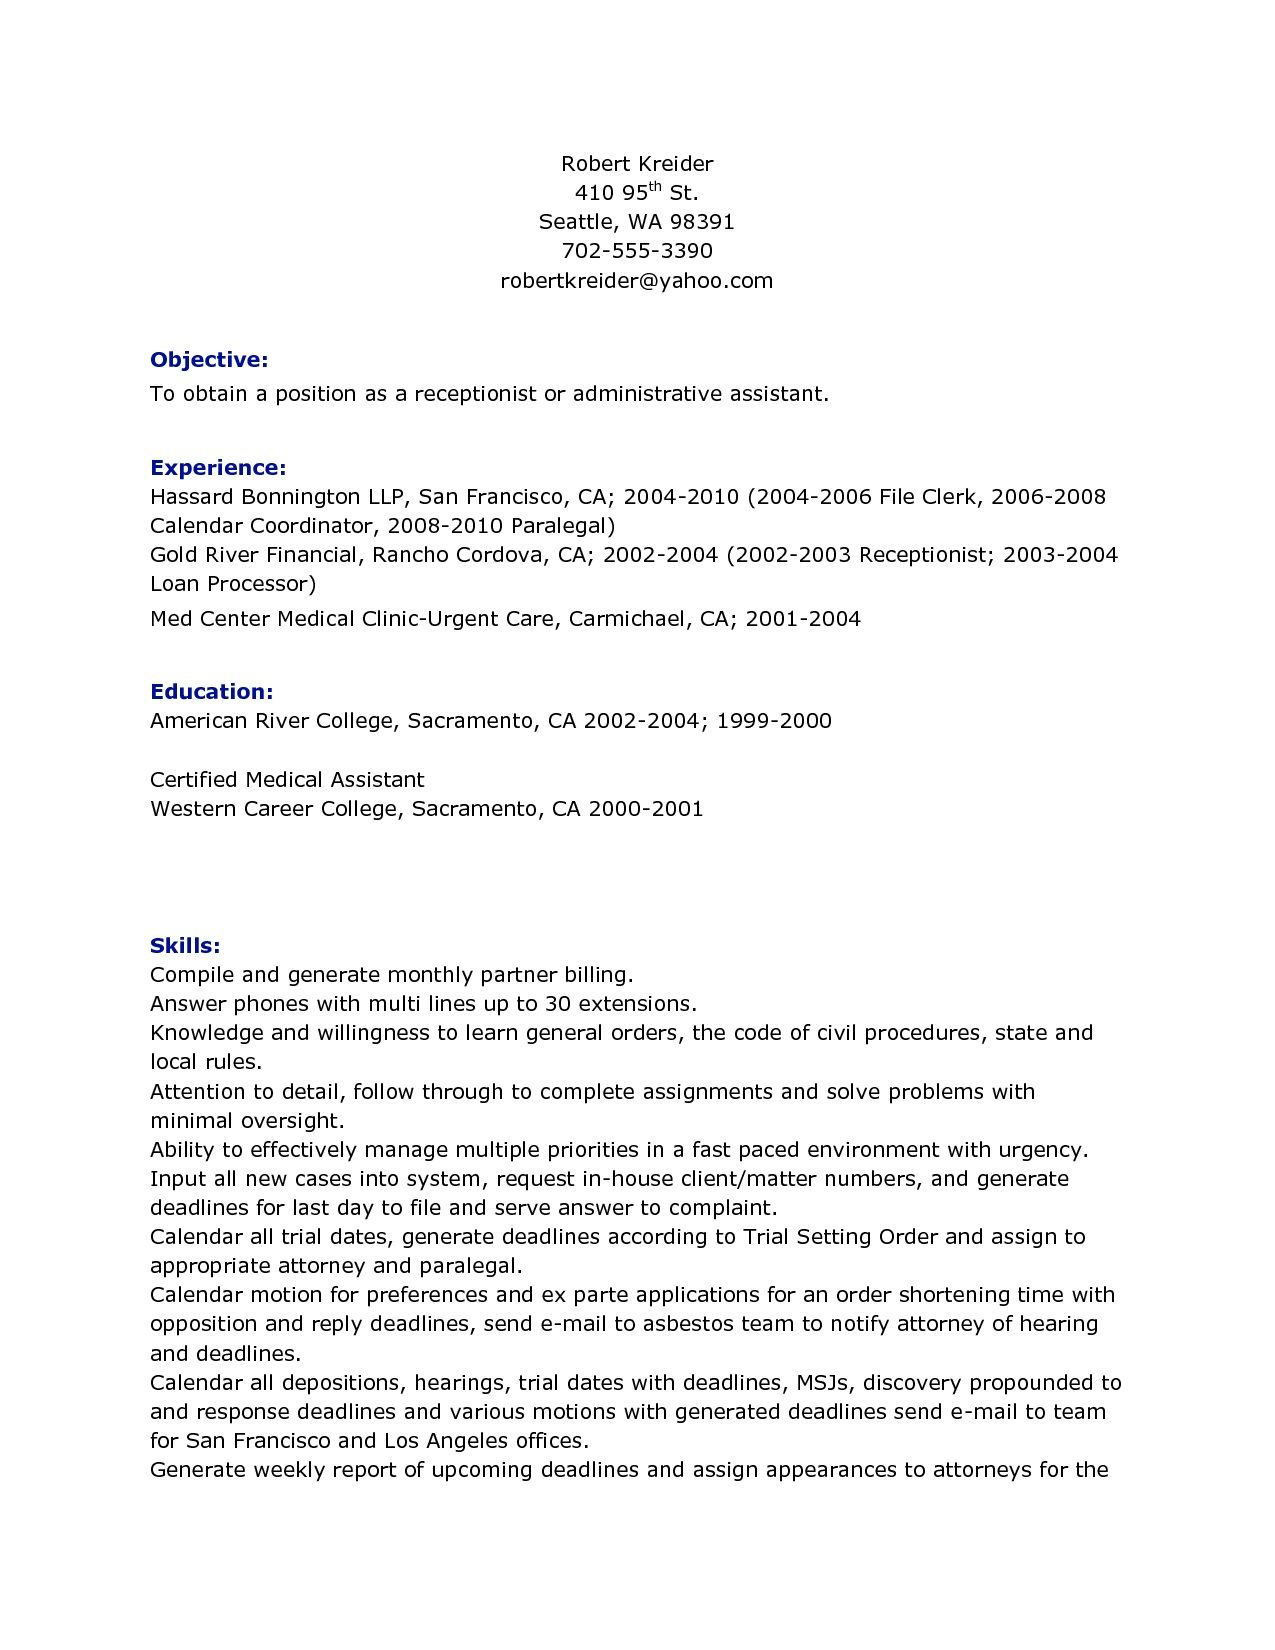 Receptionist Resume Objective - Receptionist Resume Objective we ...